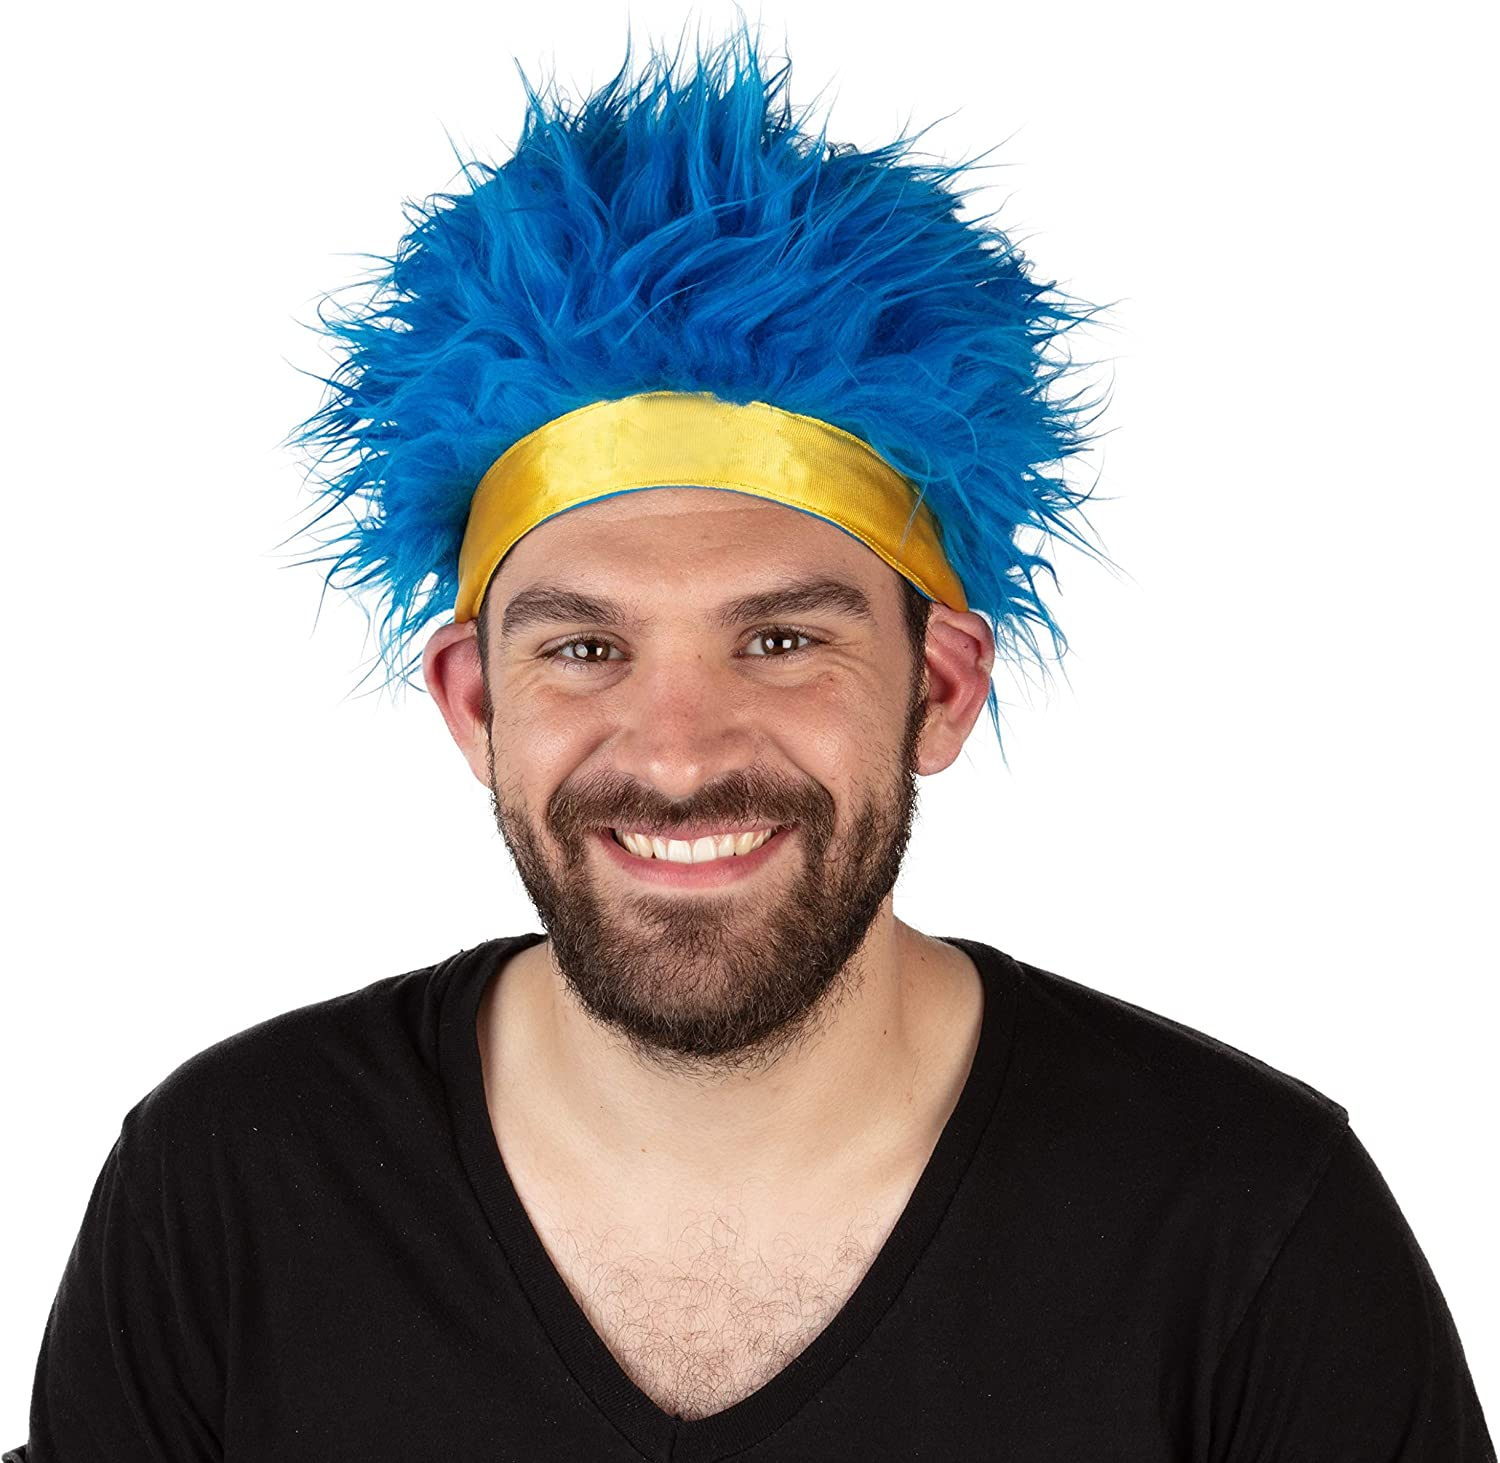 Crazy Short Spiky Blue Hair Wig with Yellow Headband - Costumes, Cosplay, Anime, Halloween, Party - Adjustable One Size Fits Most - Synthetic - Ninja Headwear